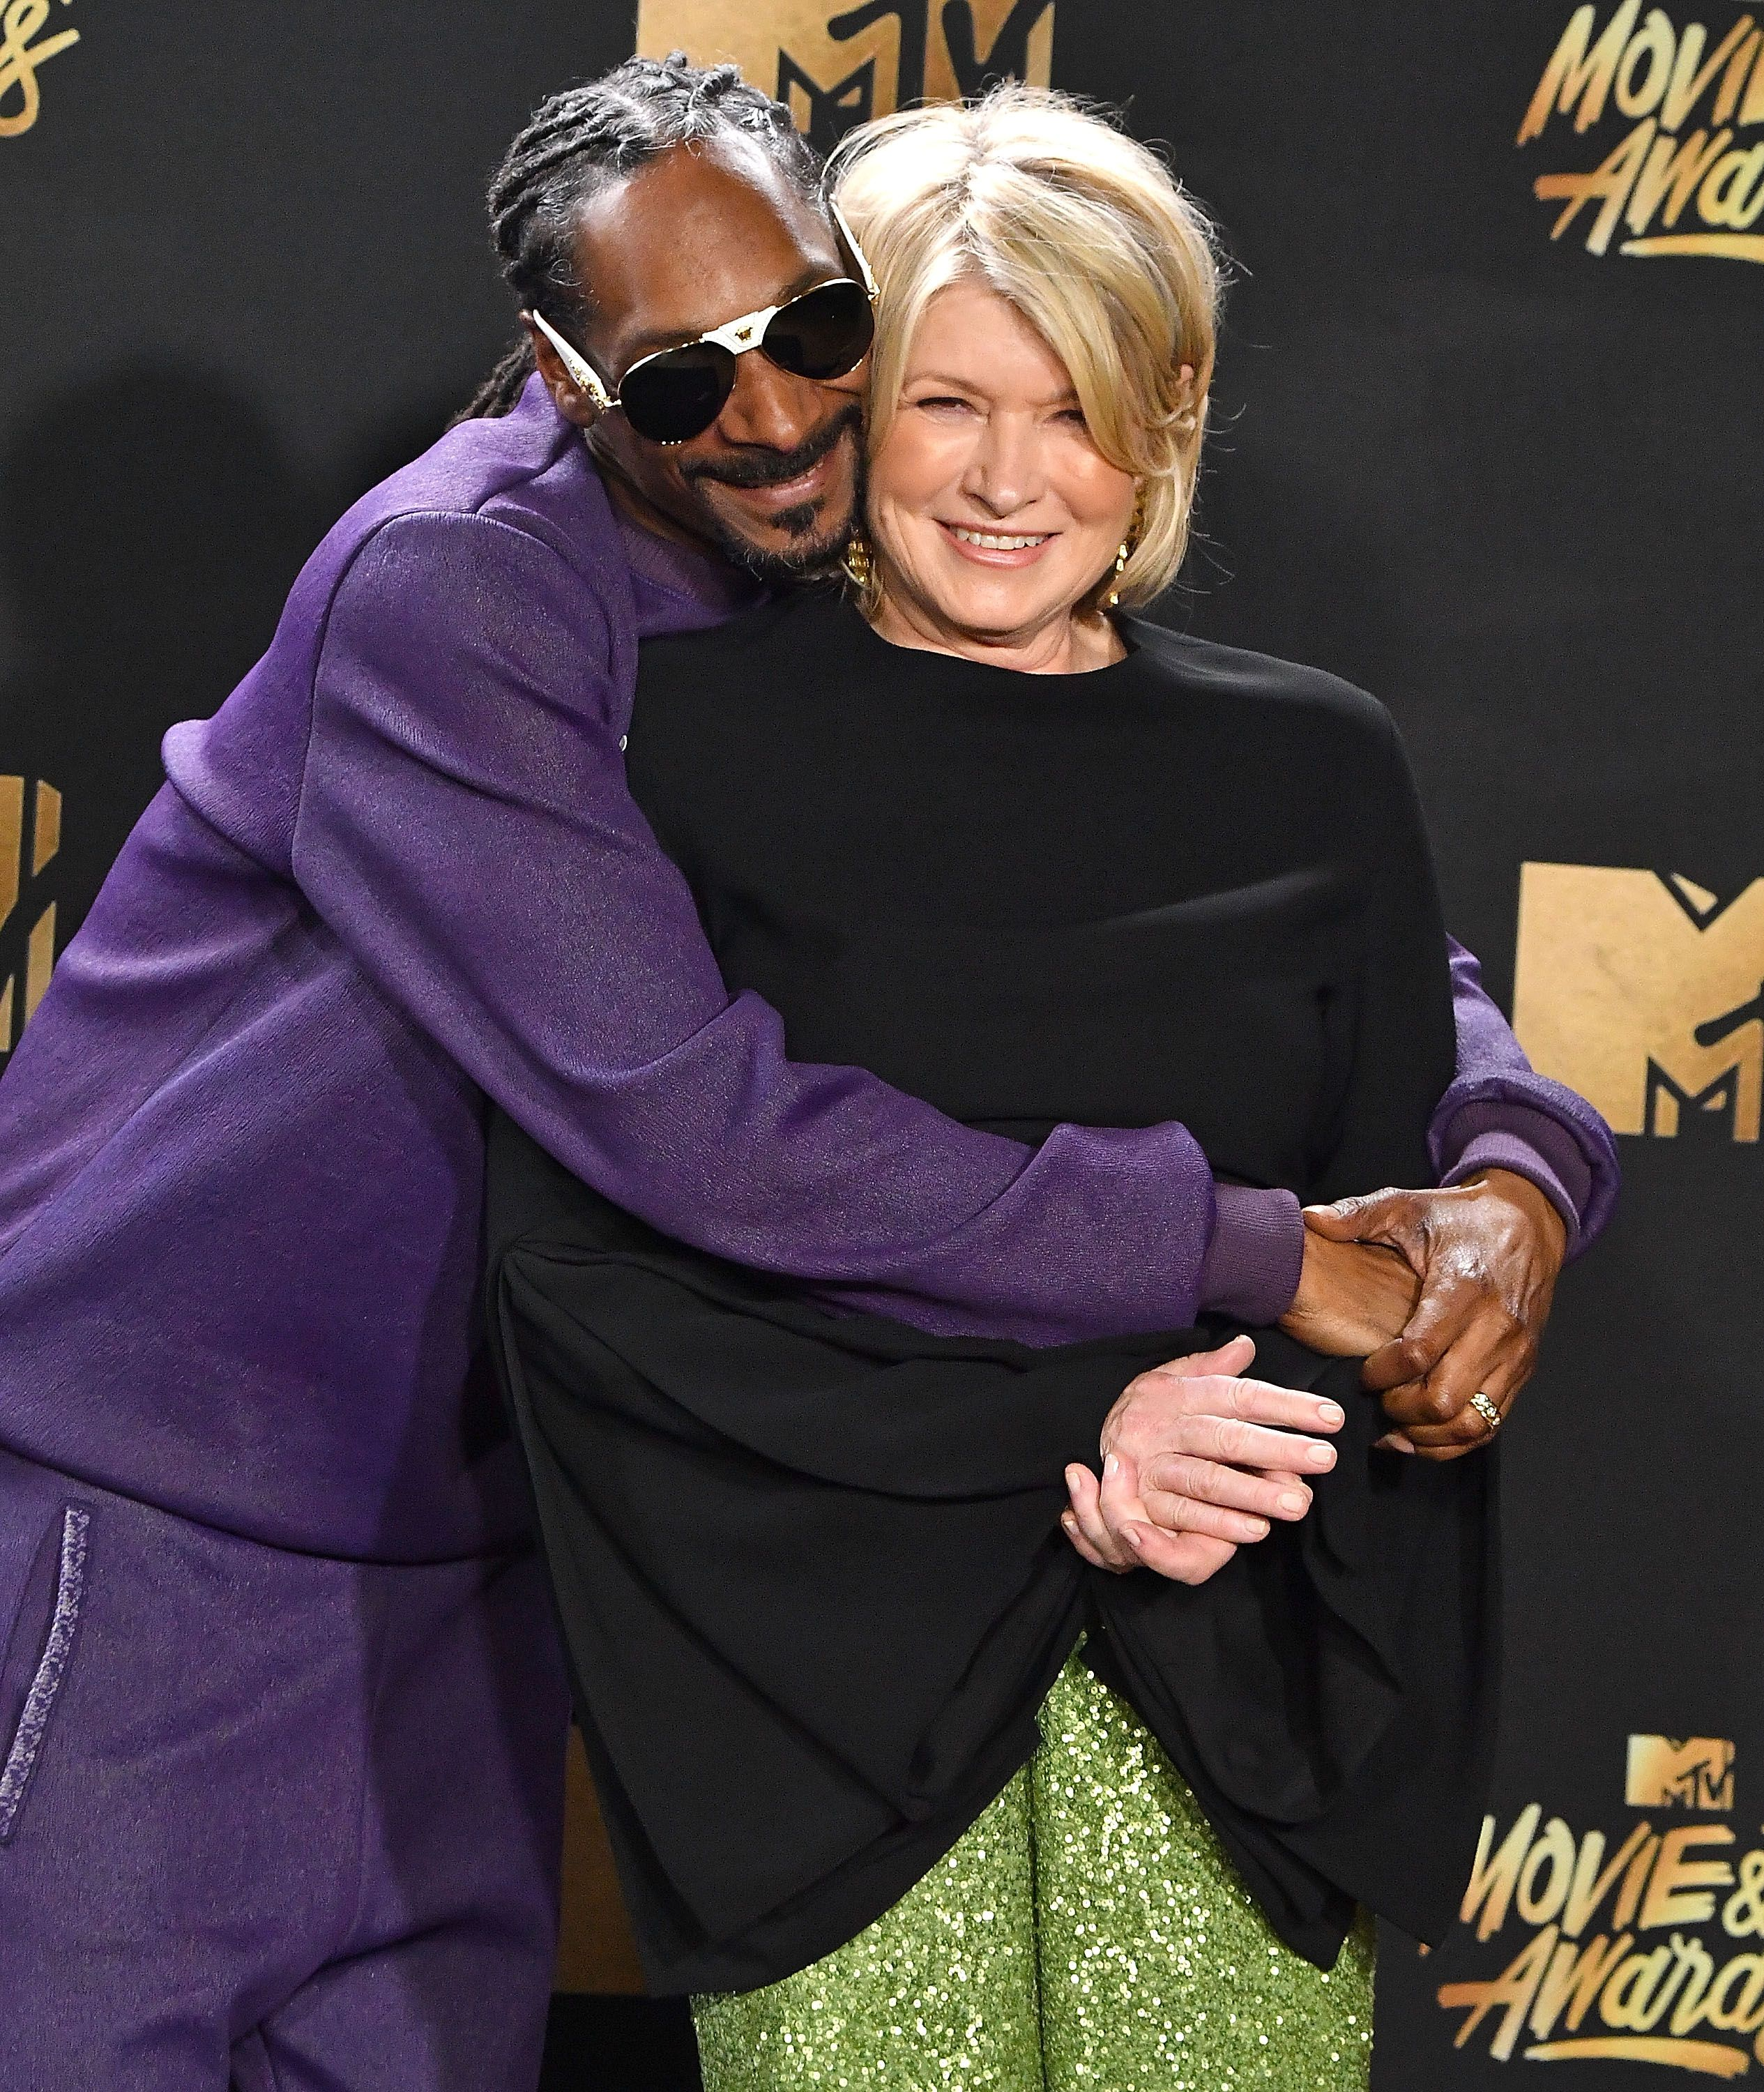 Snoop Dogg and Martha Stewart What do you get when you put one of hip hop's OGs and the most famous homemaker in America in one kitchen? A whole vibe .